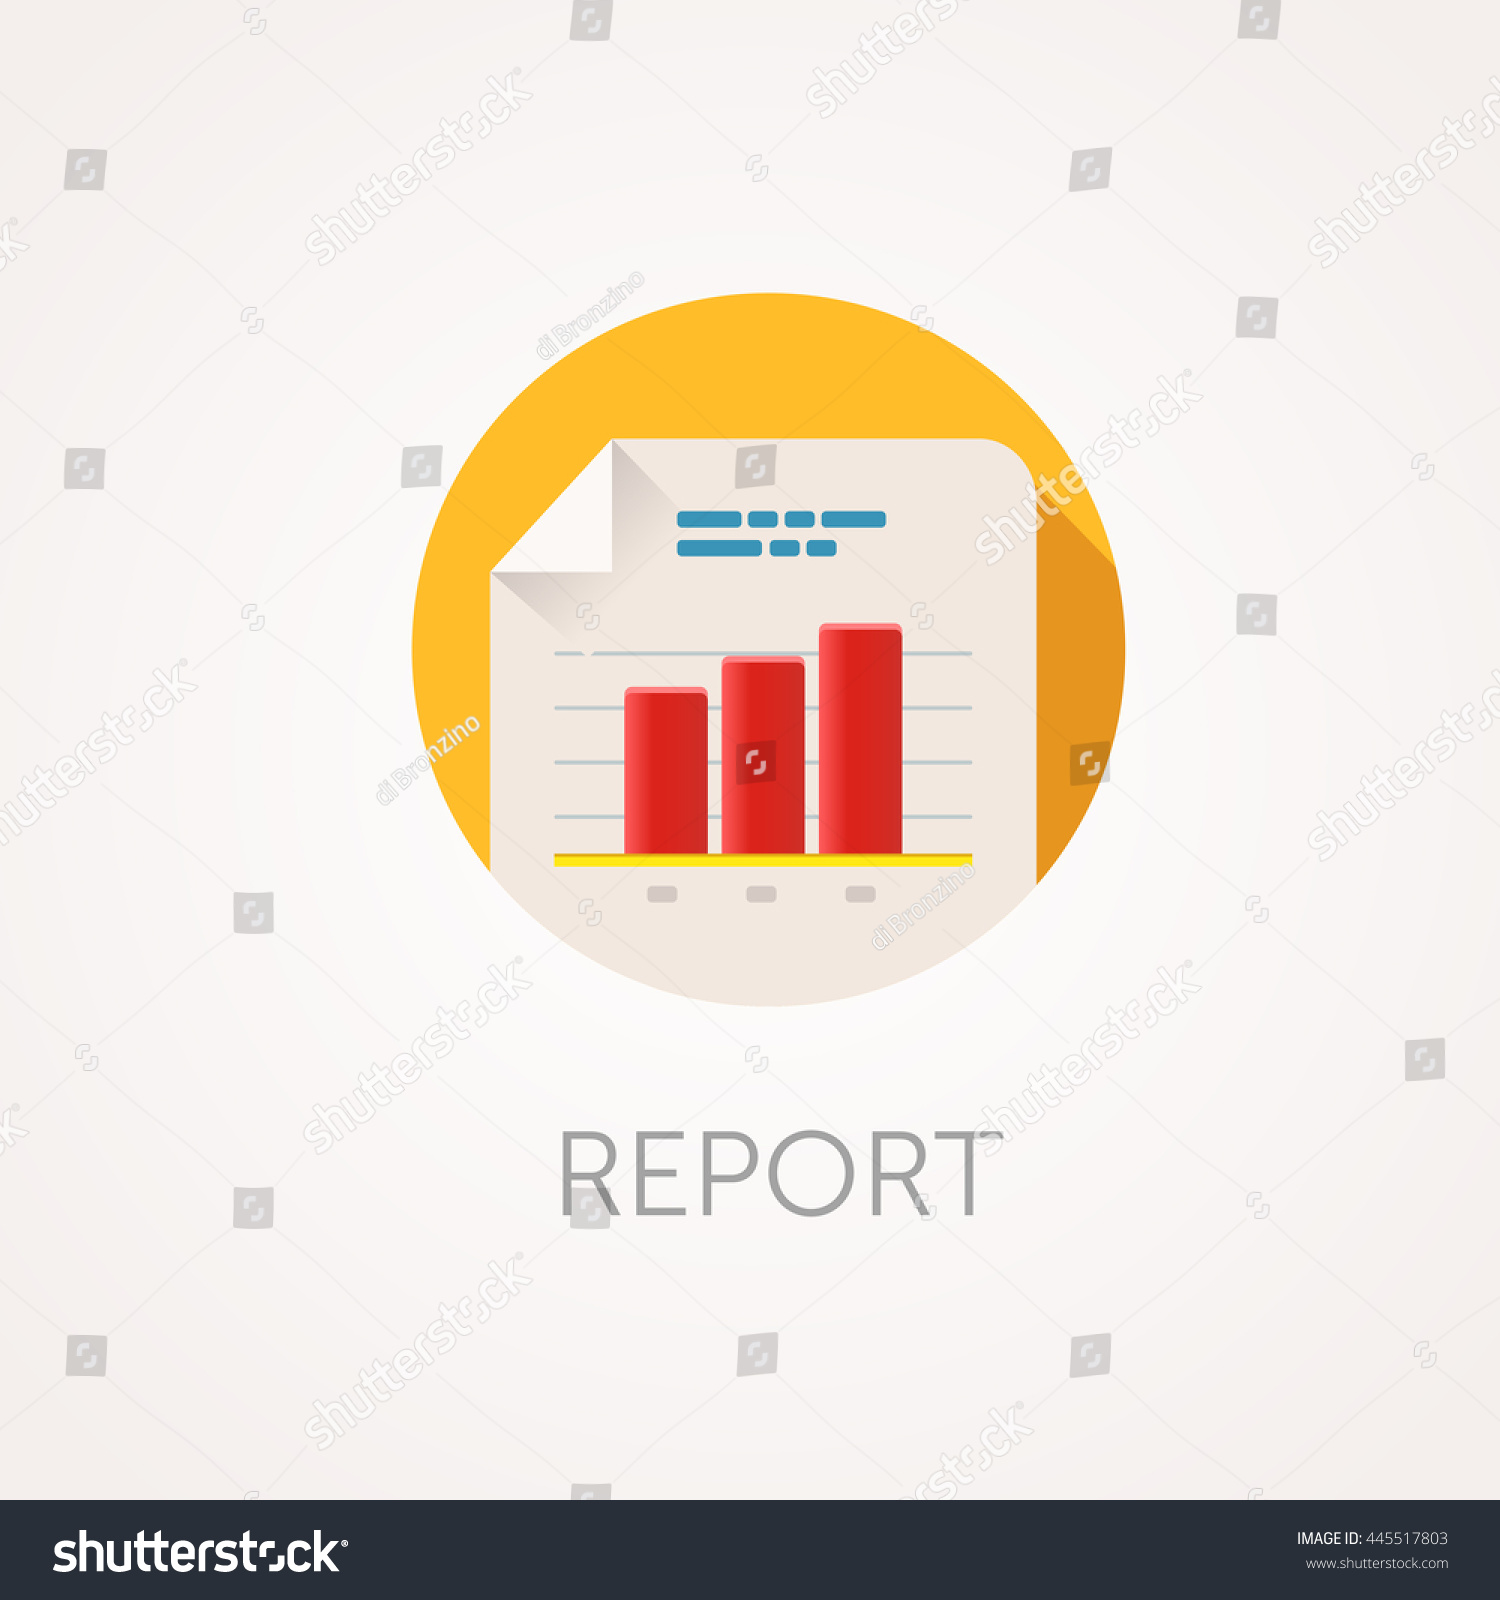 report icon flat design style with long shadow data